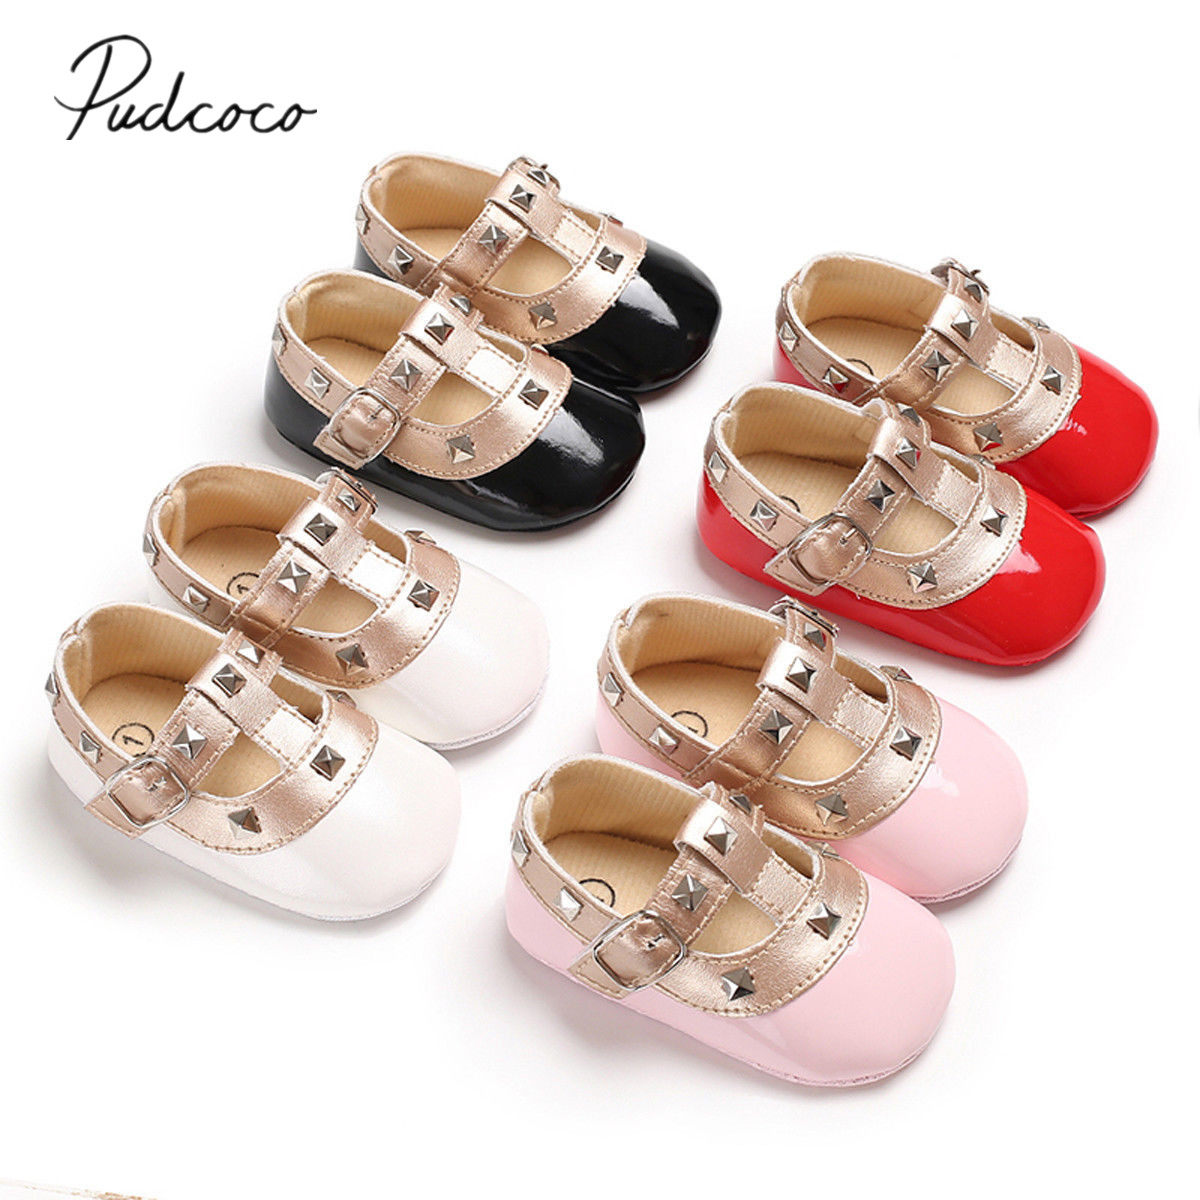 ed72d47a39 Online Shop Bling bling fur ball baby shoes for girl Sequins PU ...